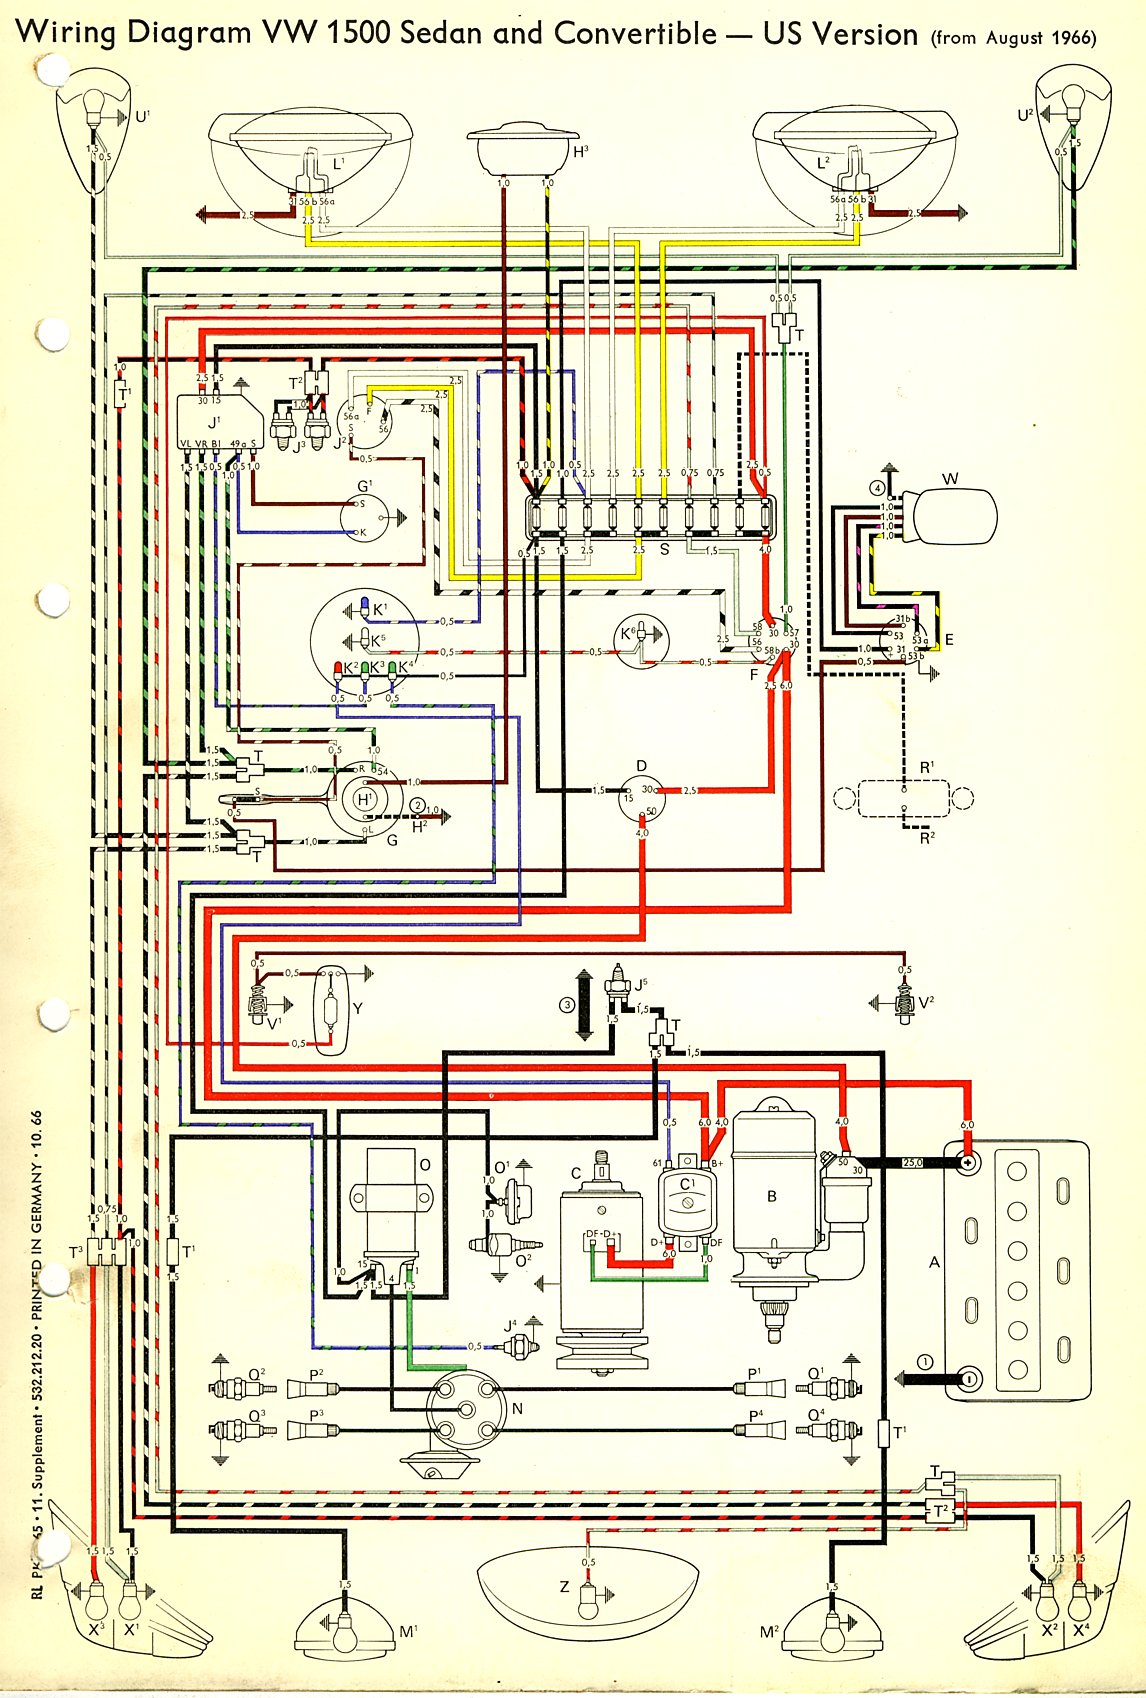 1967 vw beetle wiring harness free download wiring diagram schematic